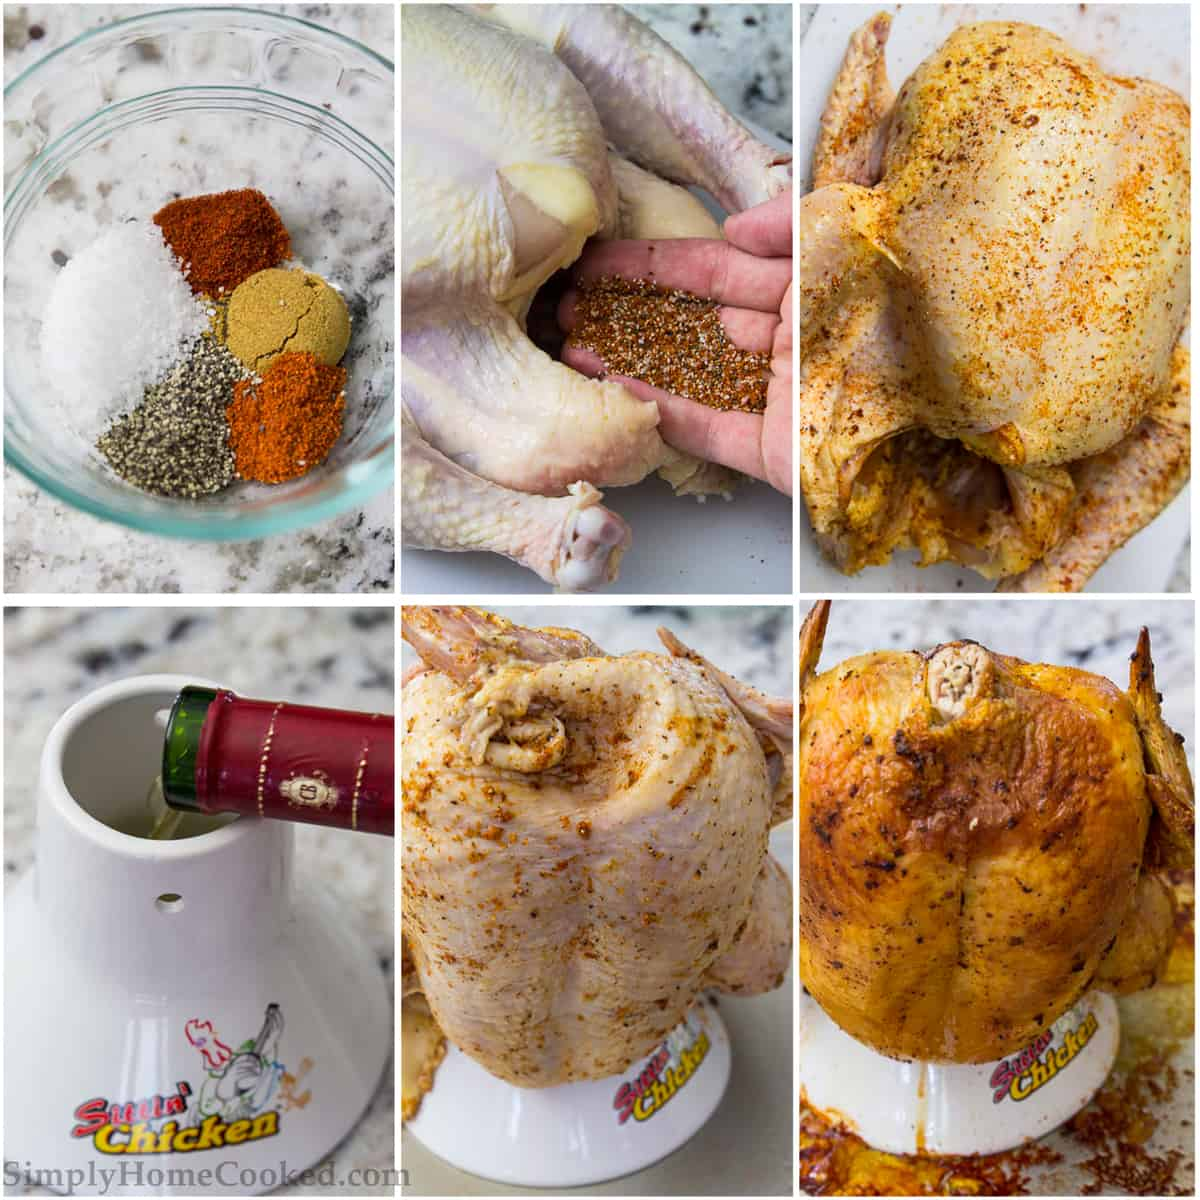 steps to make vertical roasted chicken